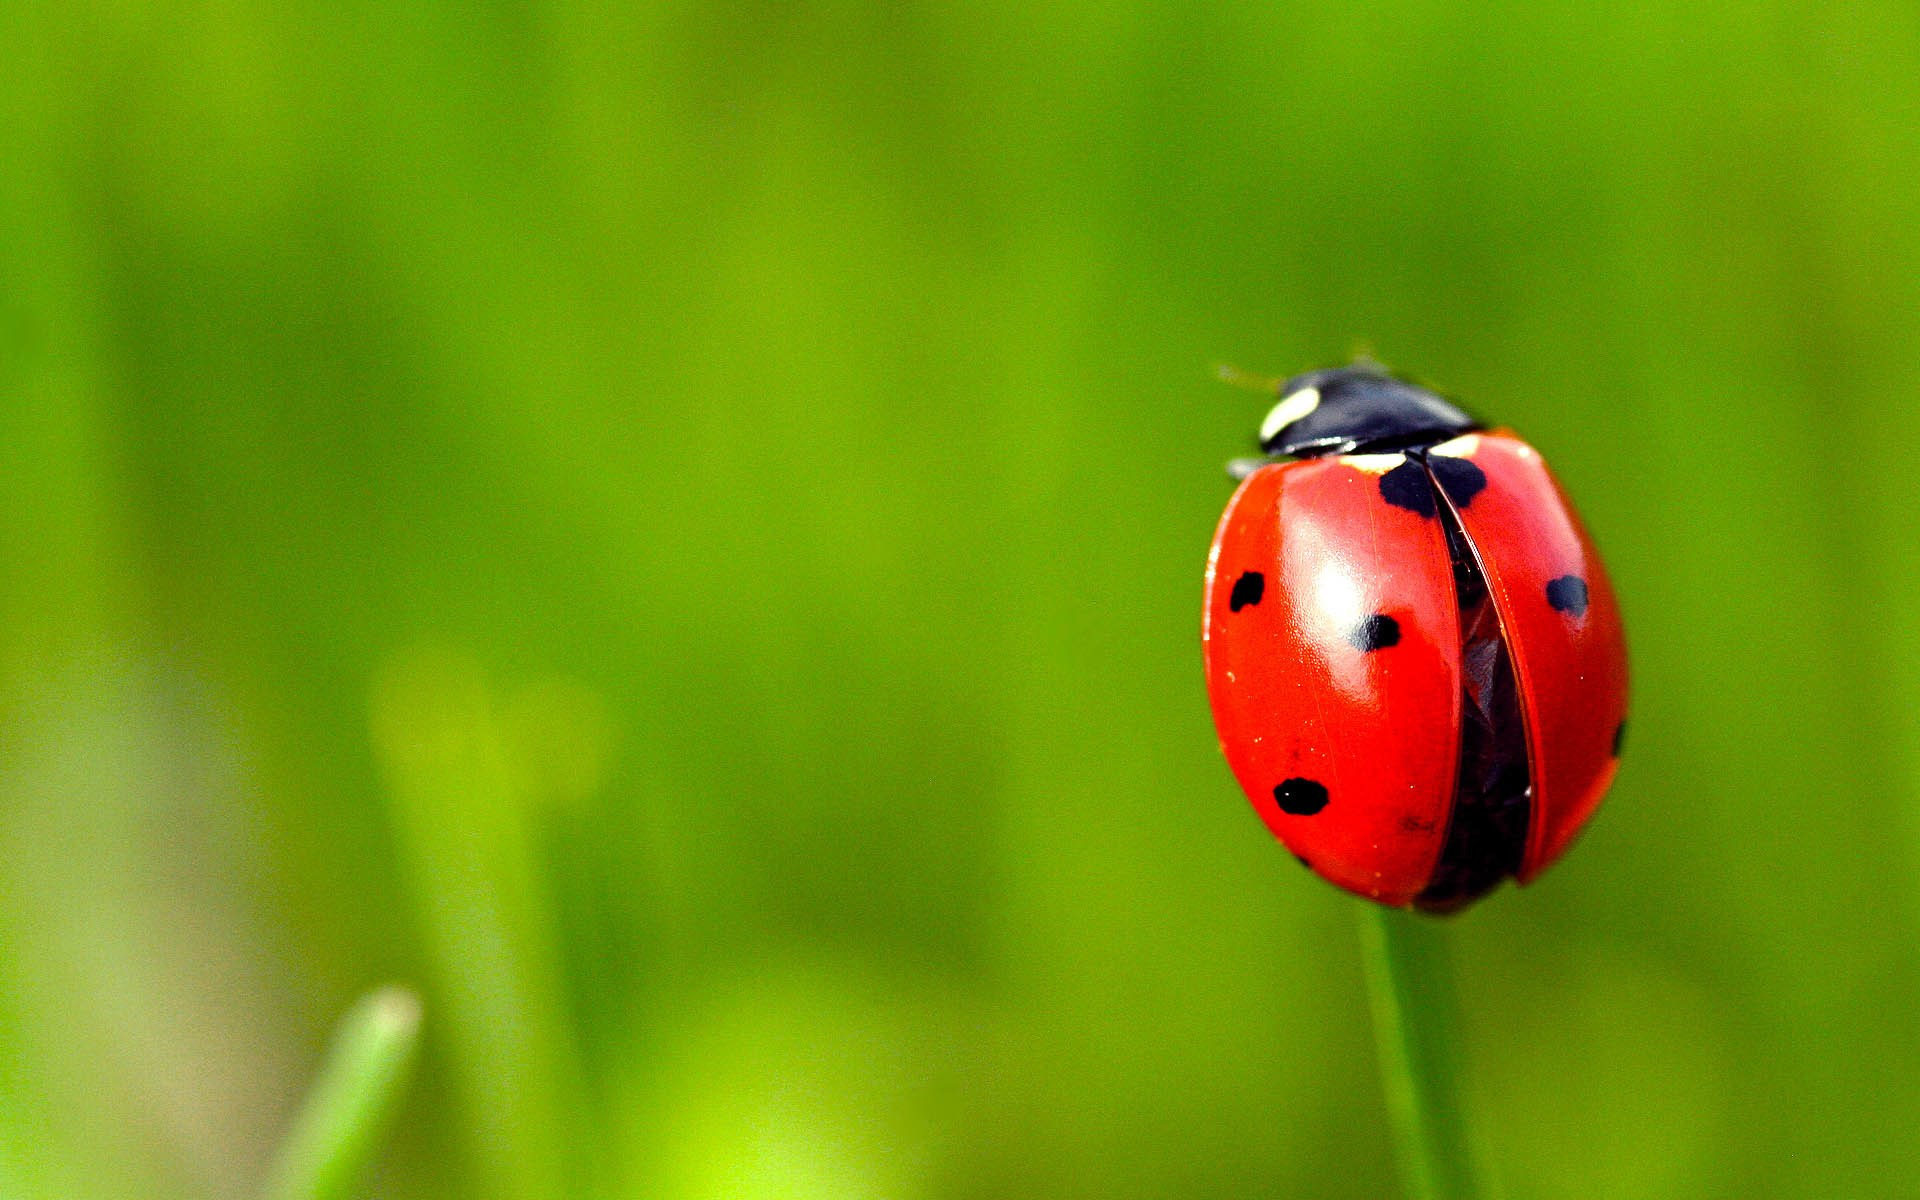 Grass Ladybug HD Wallpaper is a awesome hd photography. Free to upload, share the high definition photos. Grass Ladybug HD Wallpaper is a part of stock ...